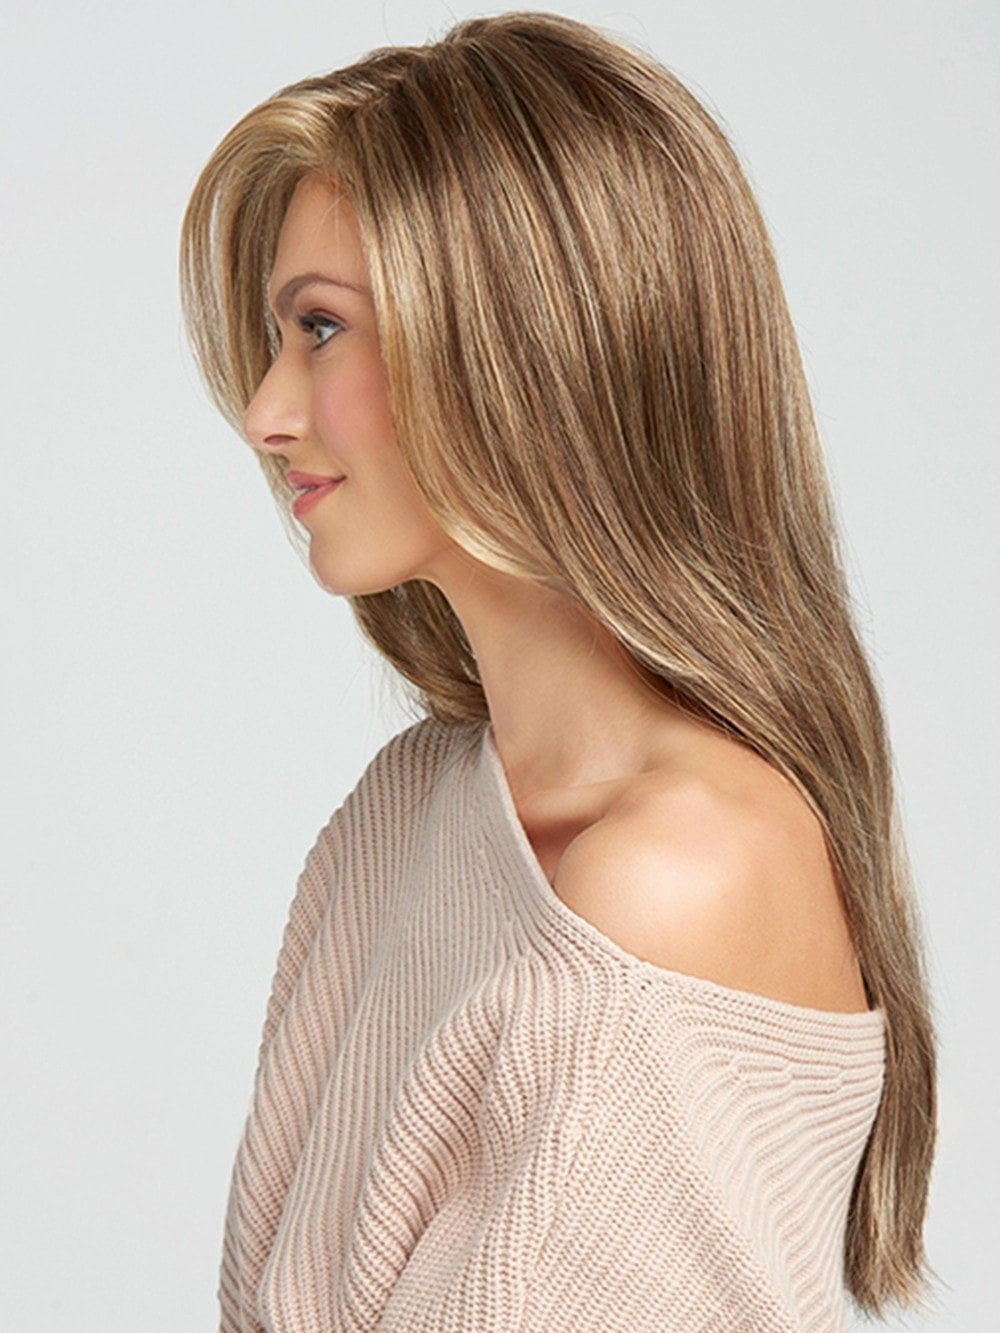 Beautiful Long Layers That Fall To Mid Back Create This Full Flowing Silhouette